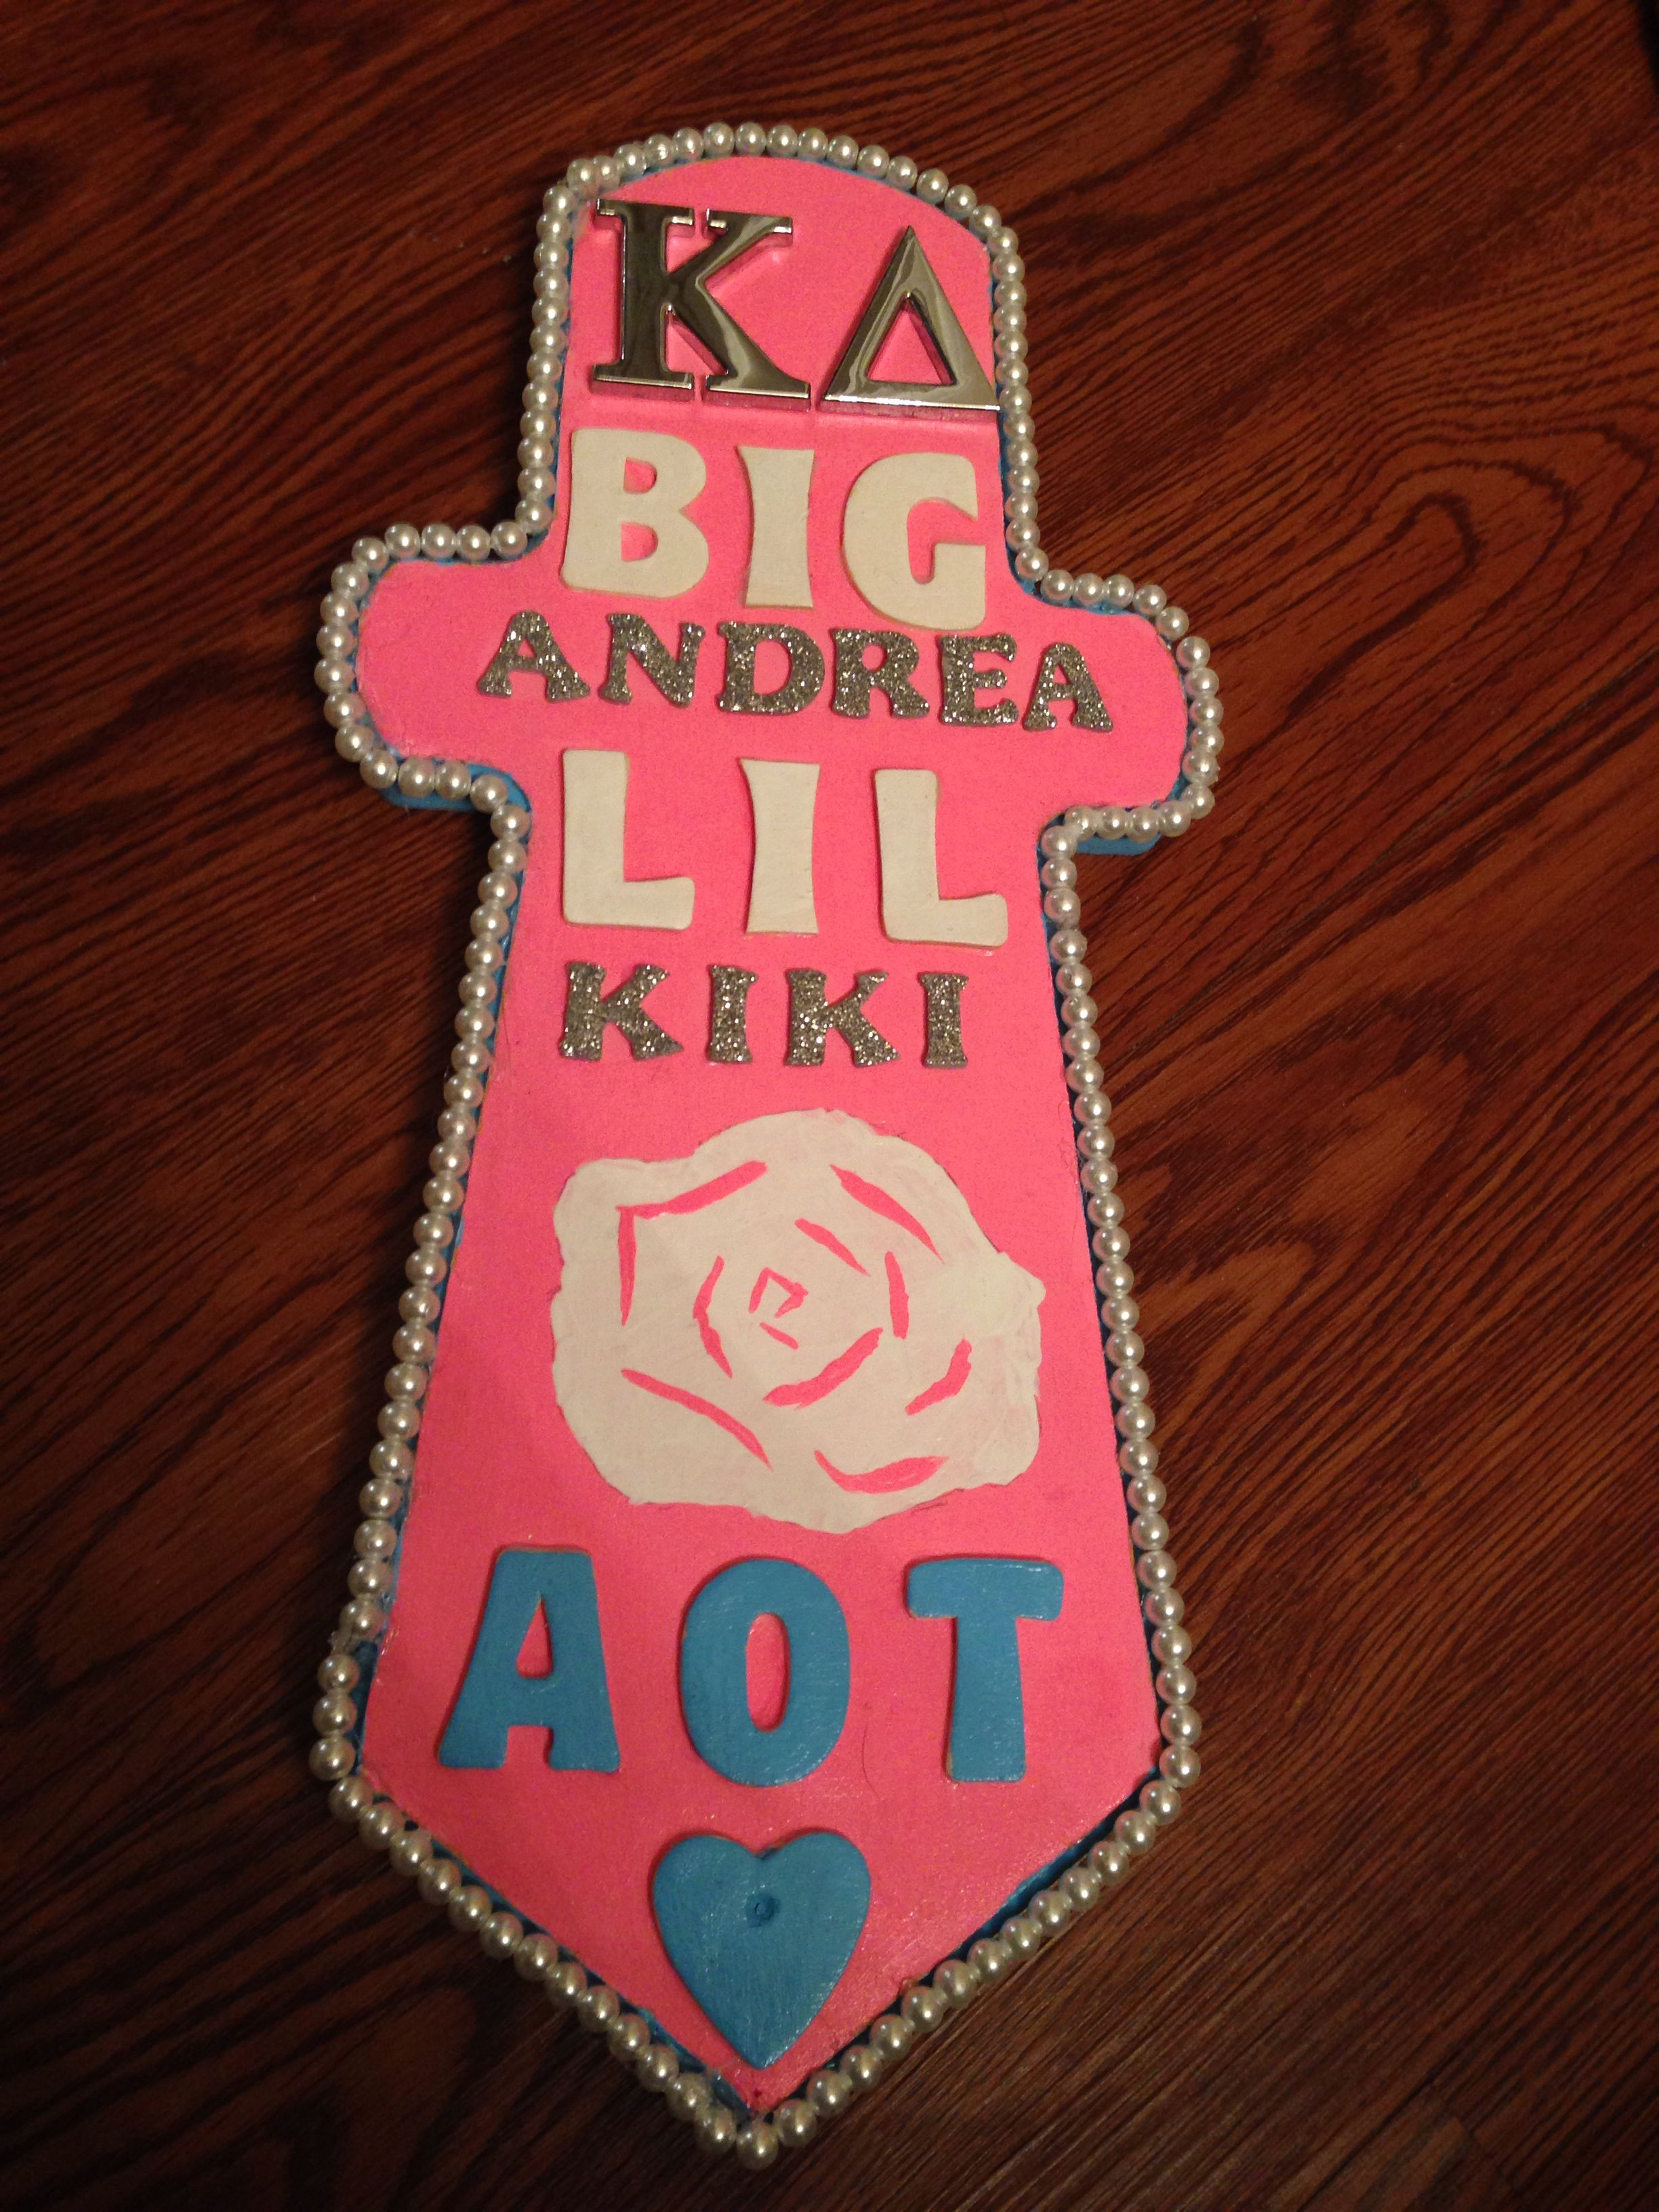 My Bigs dagger paddle I made!! So excited for initiation today!!! #inAOT #KappaDelta #paddle #UNT